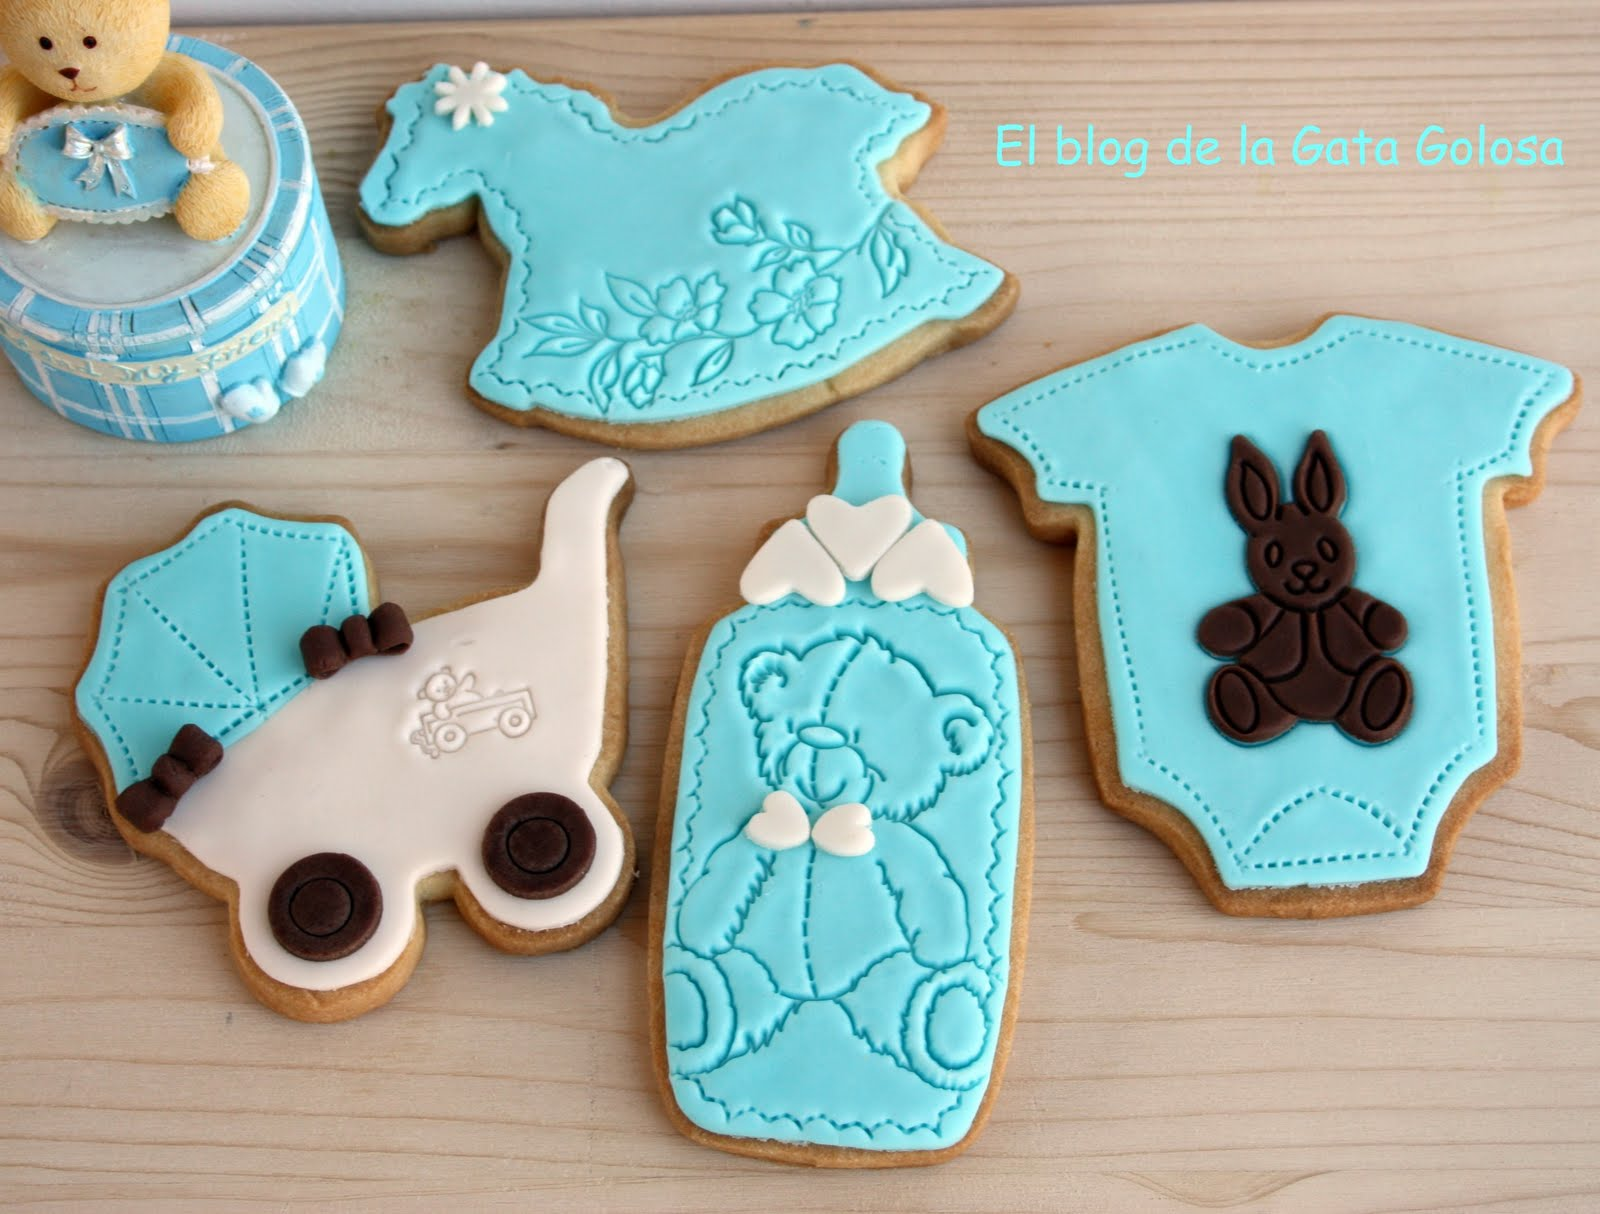 Galletas Decoradas Baby Shower Como Hacer Galletas Decoradas Para Baby Shower Imagui